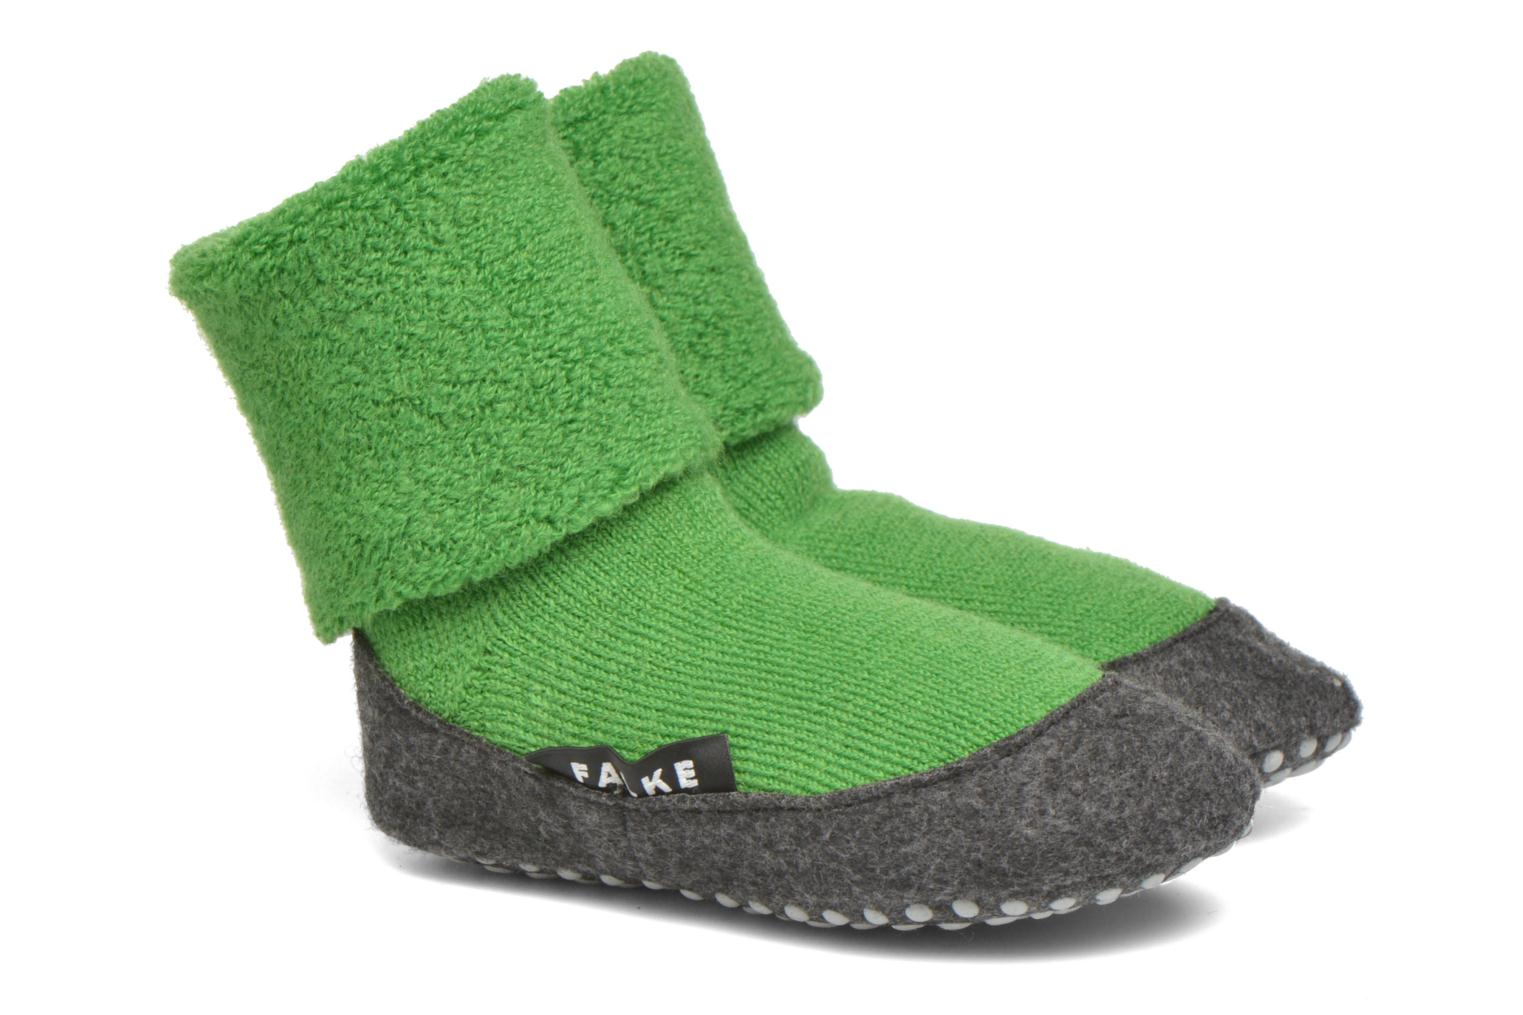 Chaussons-chaussettes Cosyshoes 7741